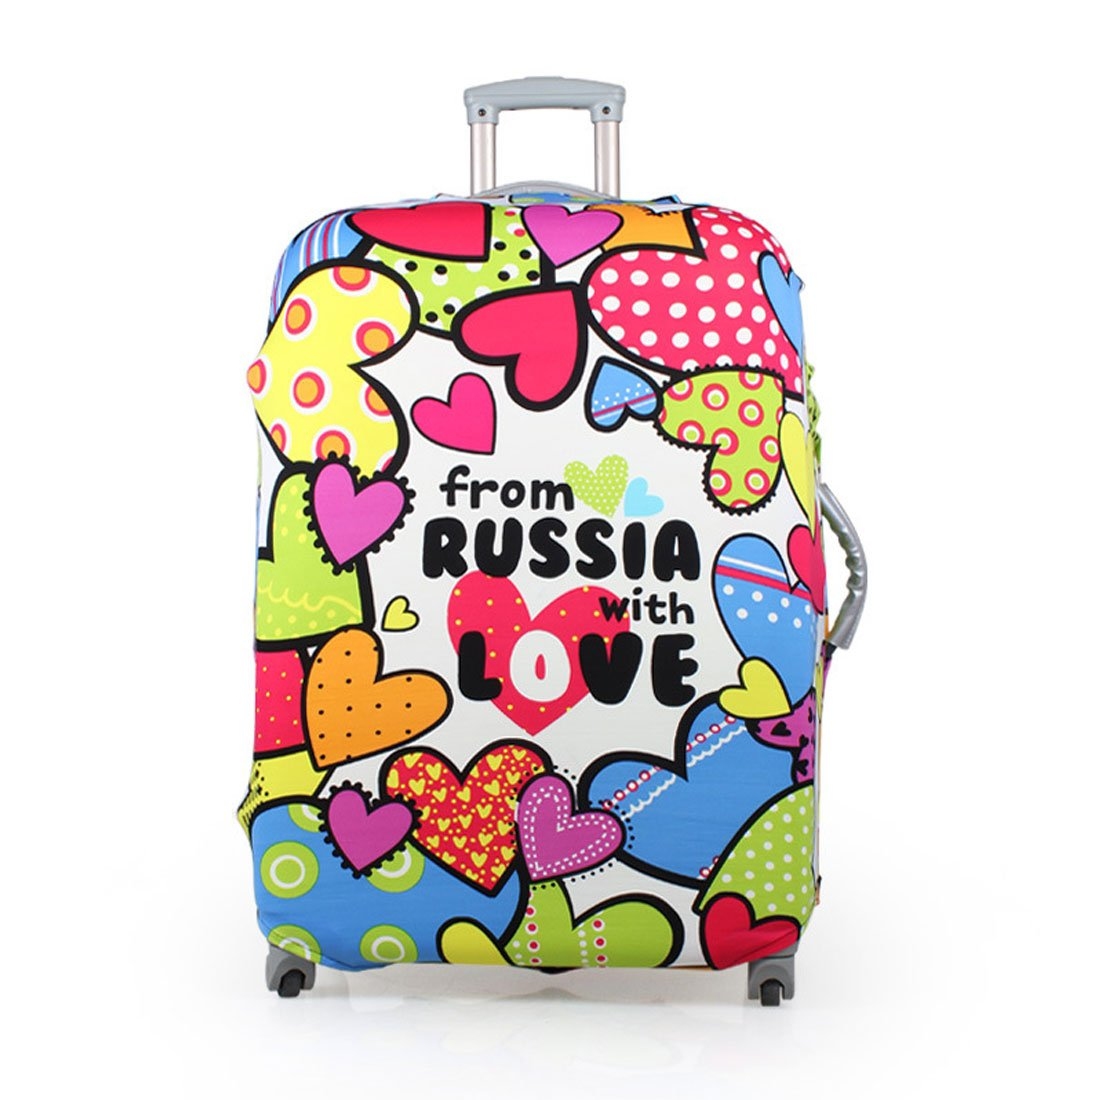 Washable Elastic Luggage Protective Covers Fits 20/24/28 Inch Suitcase Baggage Cover (S(18-20''), From Russia with love)